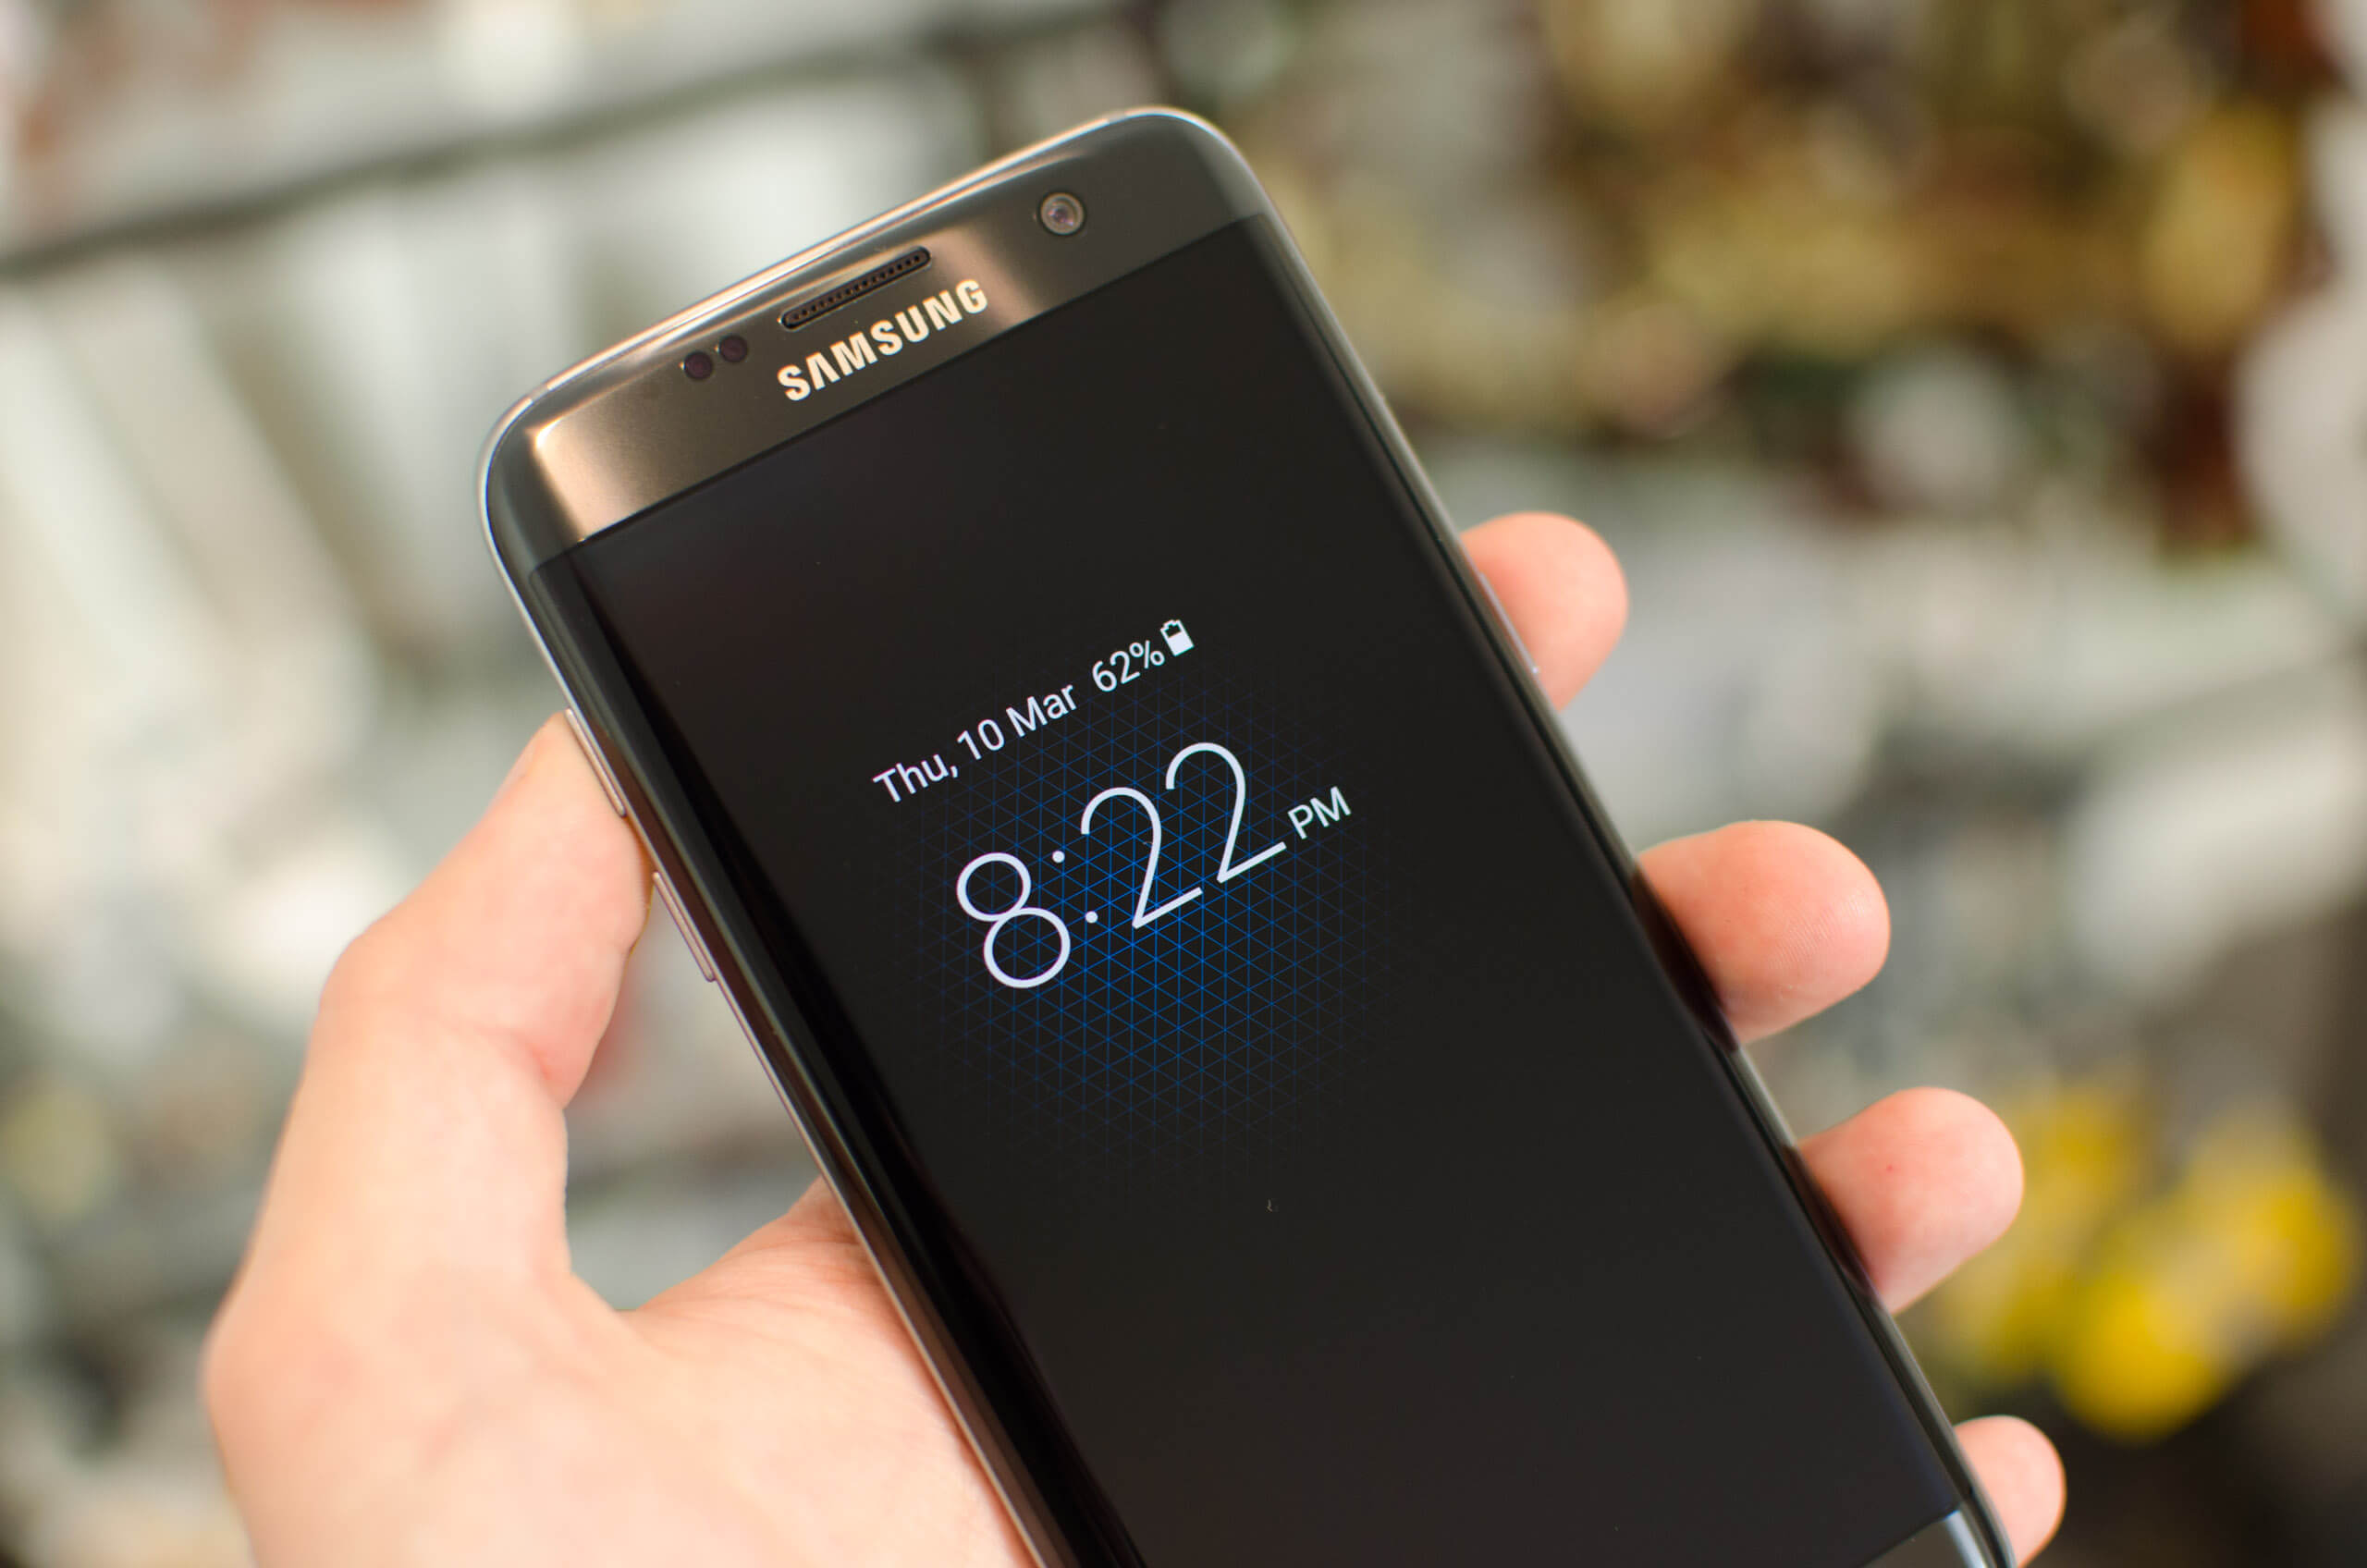 Tested: The Galaxy S7's always-on display consumes very